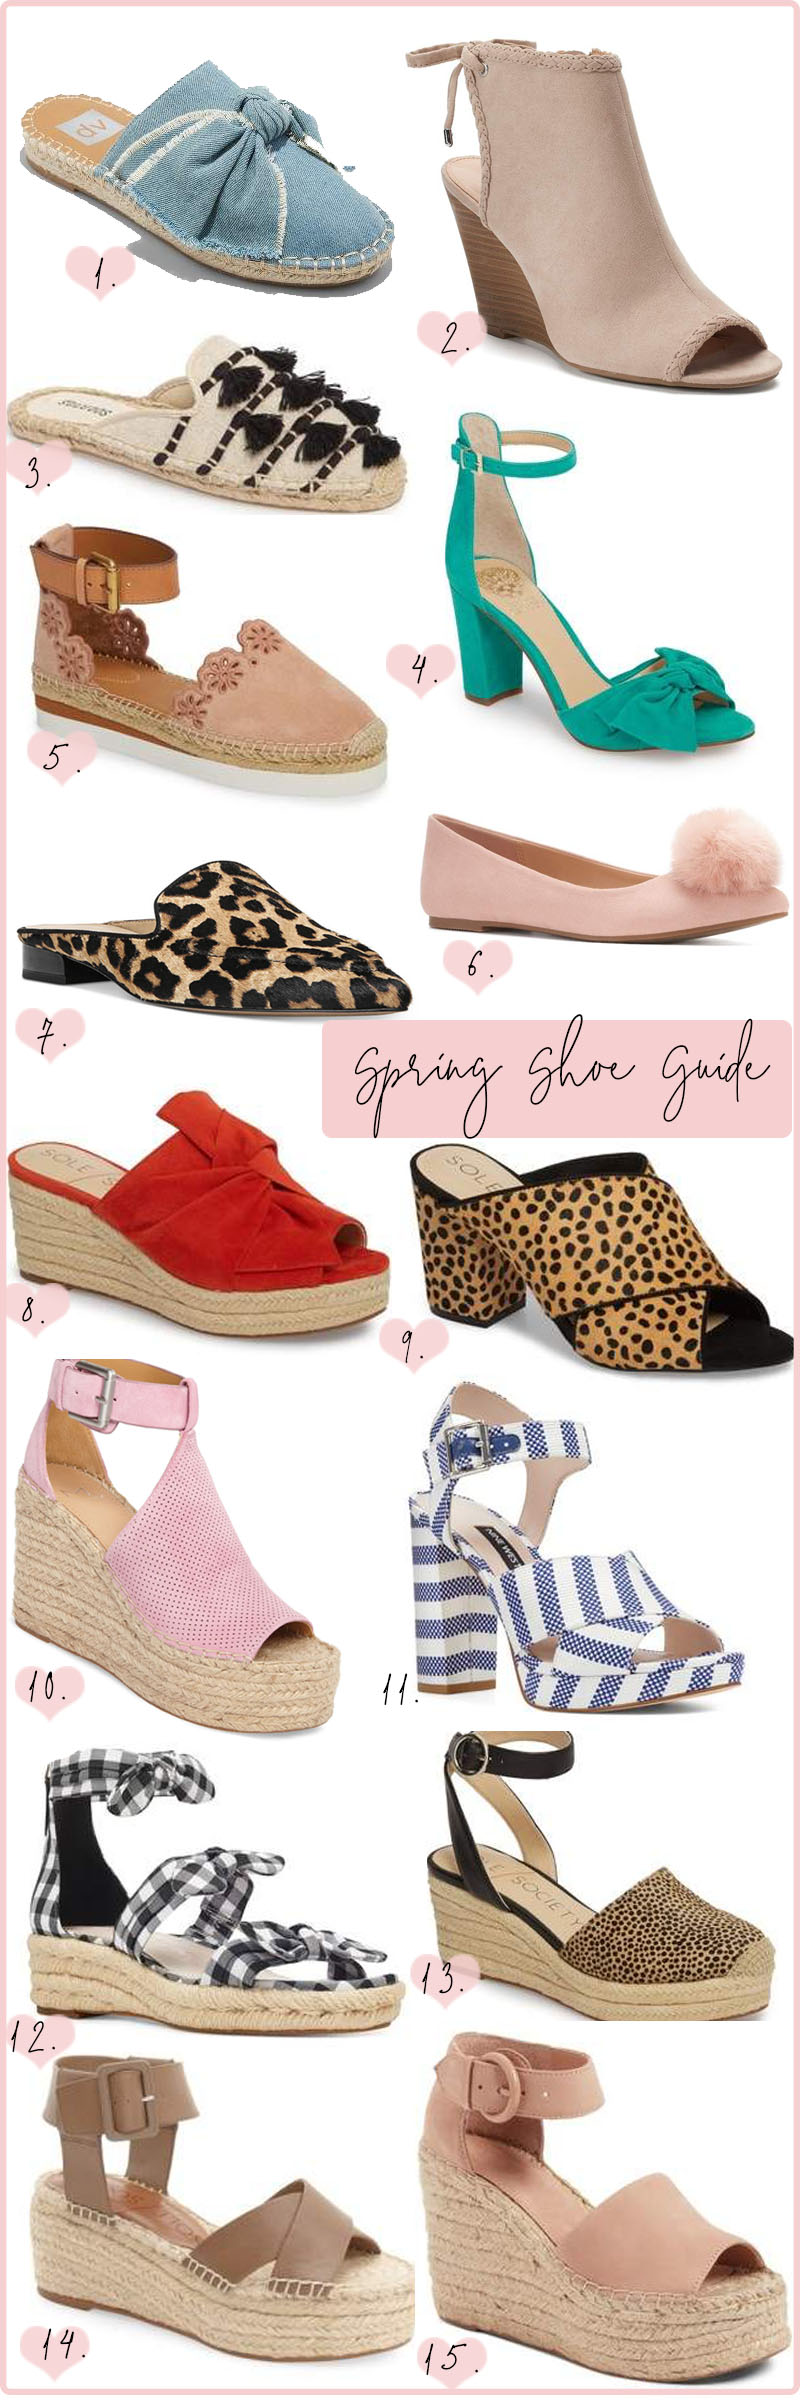 Spring Shoe Guide